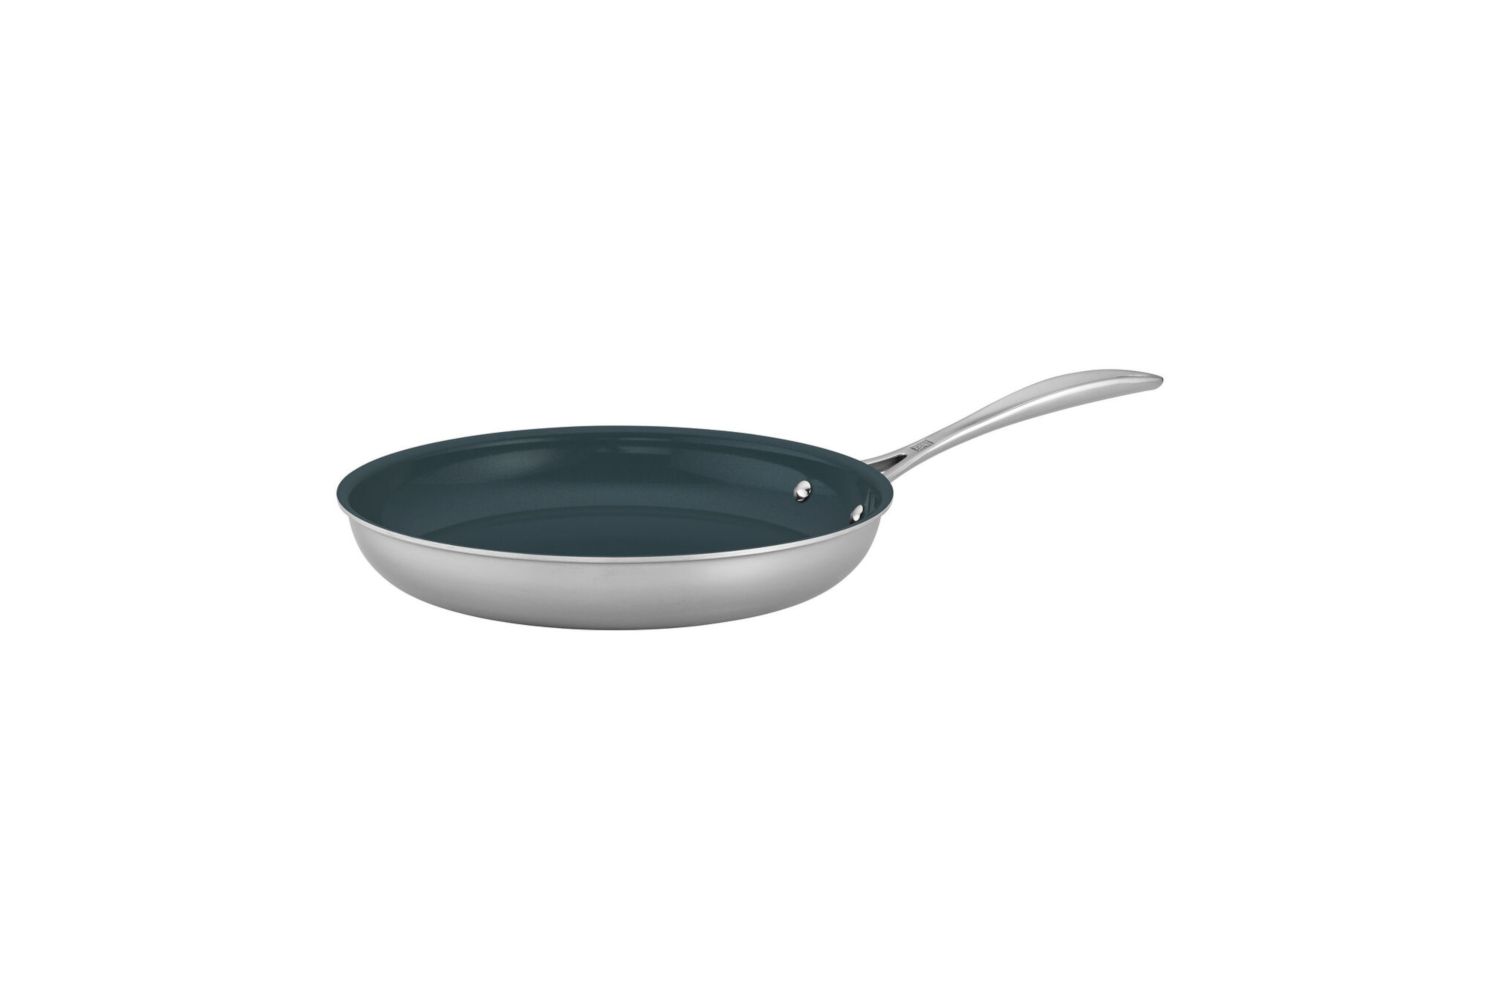 Zwilling CFX Stainless Steel Ceramic Nonstick Fry Pans